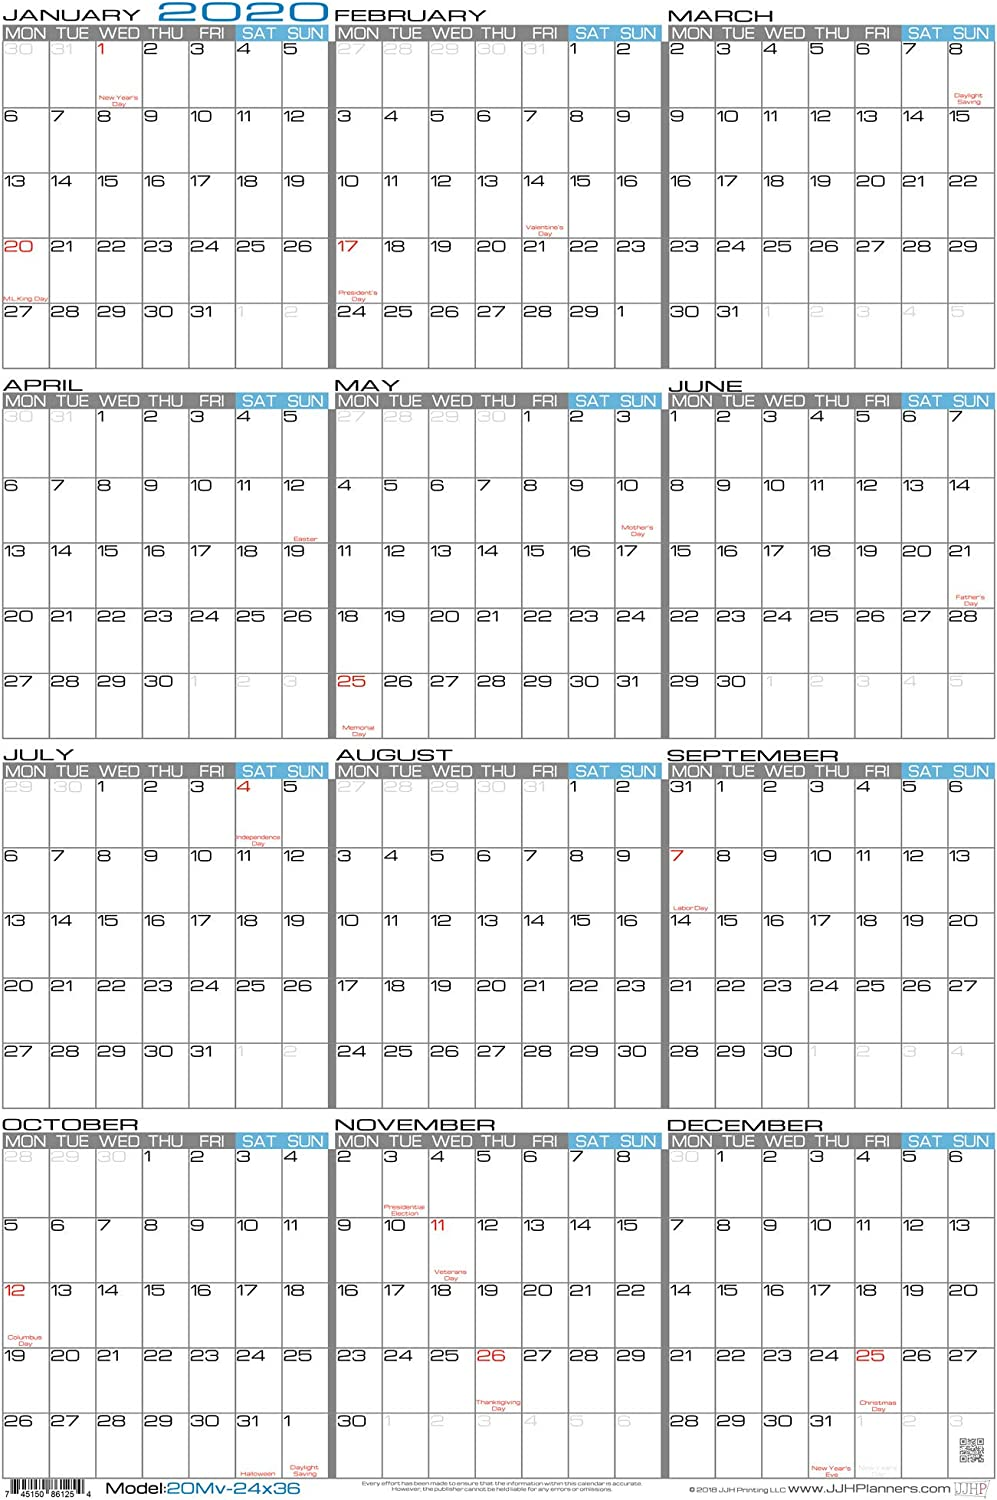 "JJH Planners - Laminated - 24"" x 36"" Large Monday Start Week 2020 Wall Calendar - Vertical 12 Month Yearly Annual Planner (20Mv-24x36)"